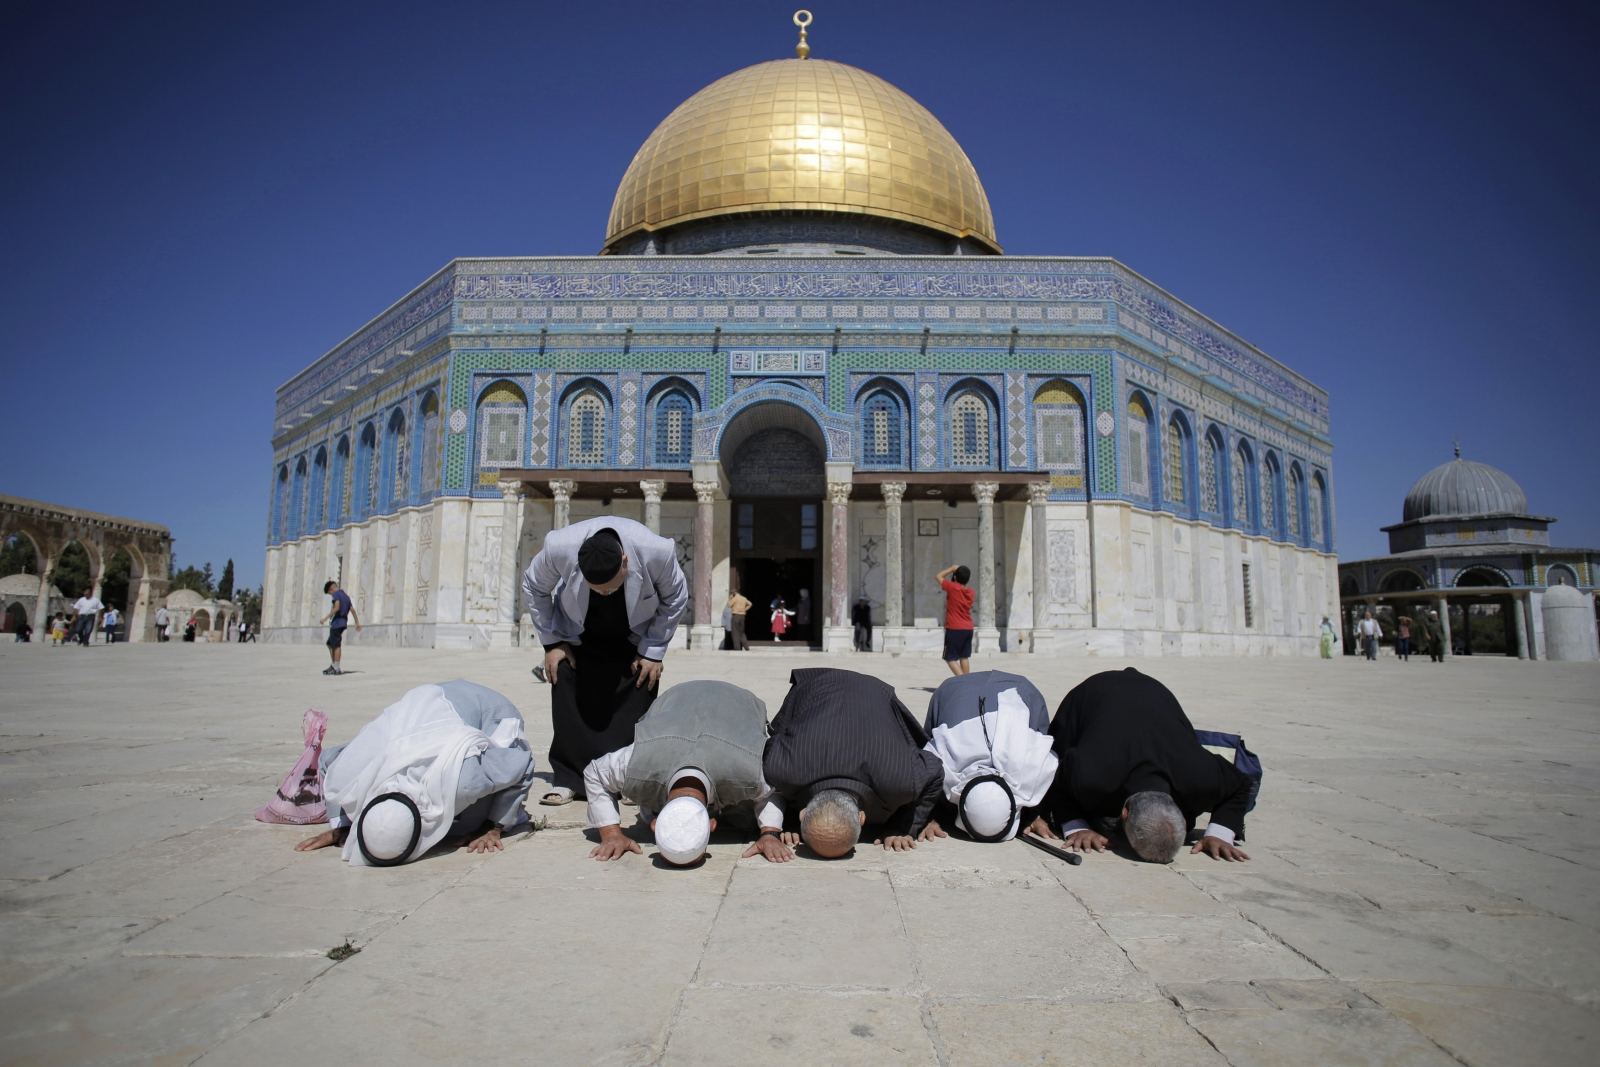 Palestinians from Gaza pray in front of the Dome of the Rock during their visit at the compound known to Muslims as Noble Sanctuary and to Jews as Temple Mount in Jerusalem's Old City October 5, 2014